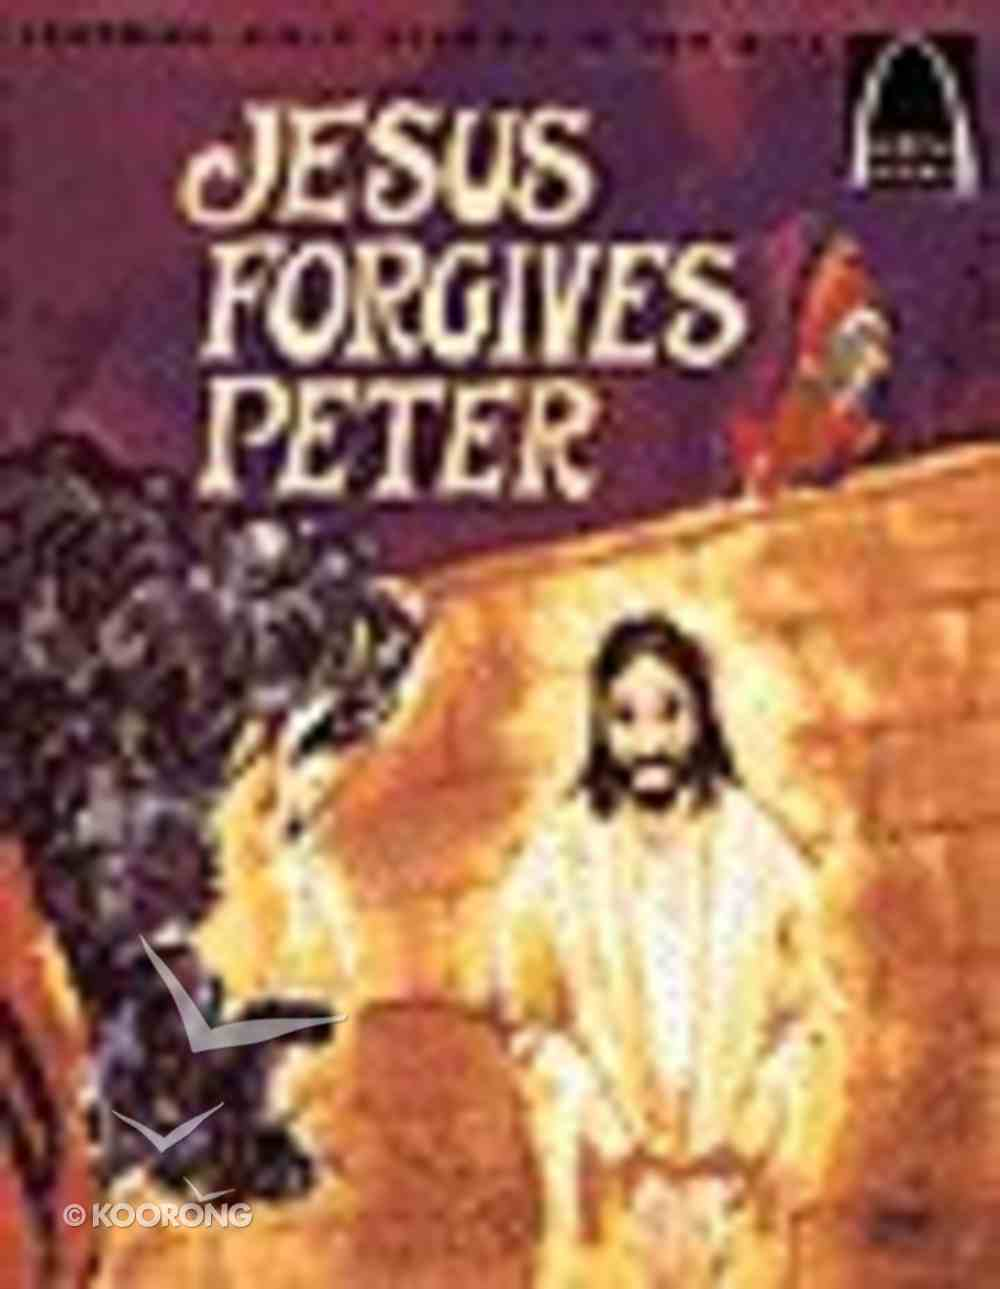 Jesus Forgives Peter (Arch Books Series) Paperback